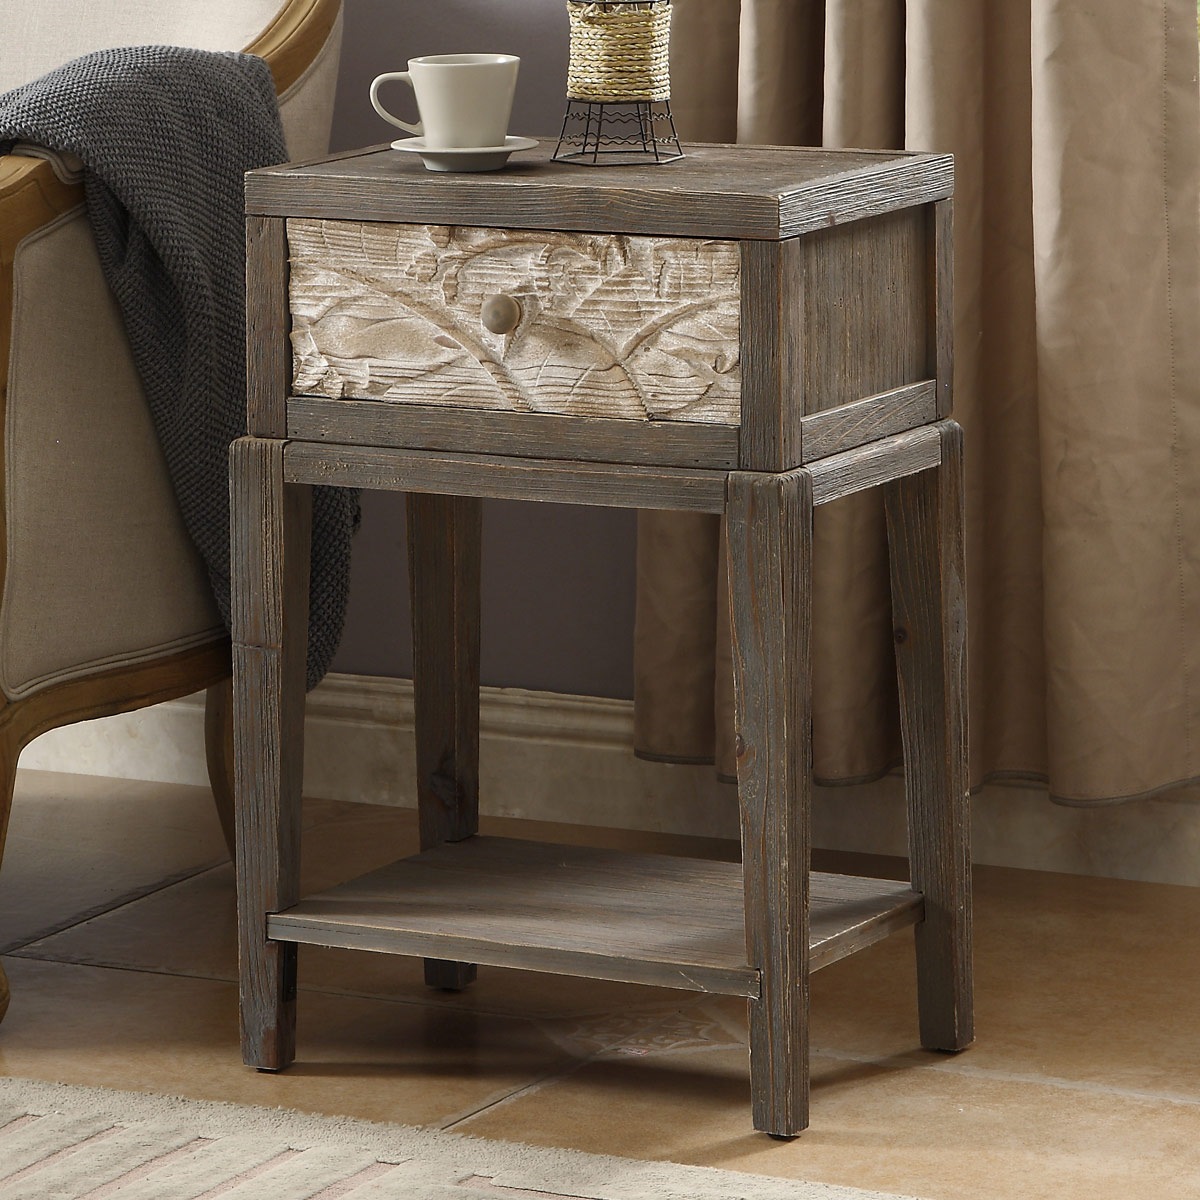 one drawer fir wood accent table coffee sets with storage round bronze small outdoor patio cement and benches target kindle fire living room contemporary marble drum stool